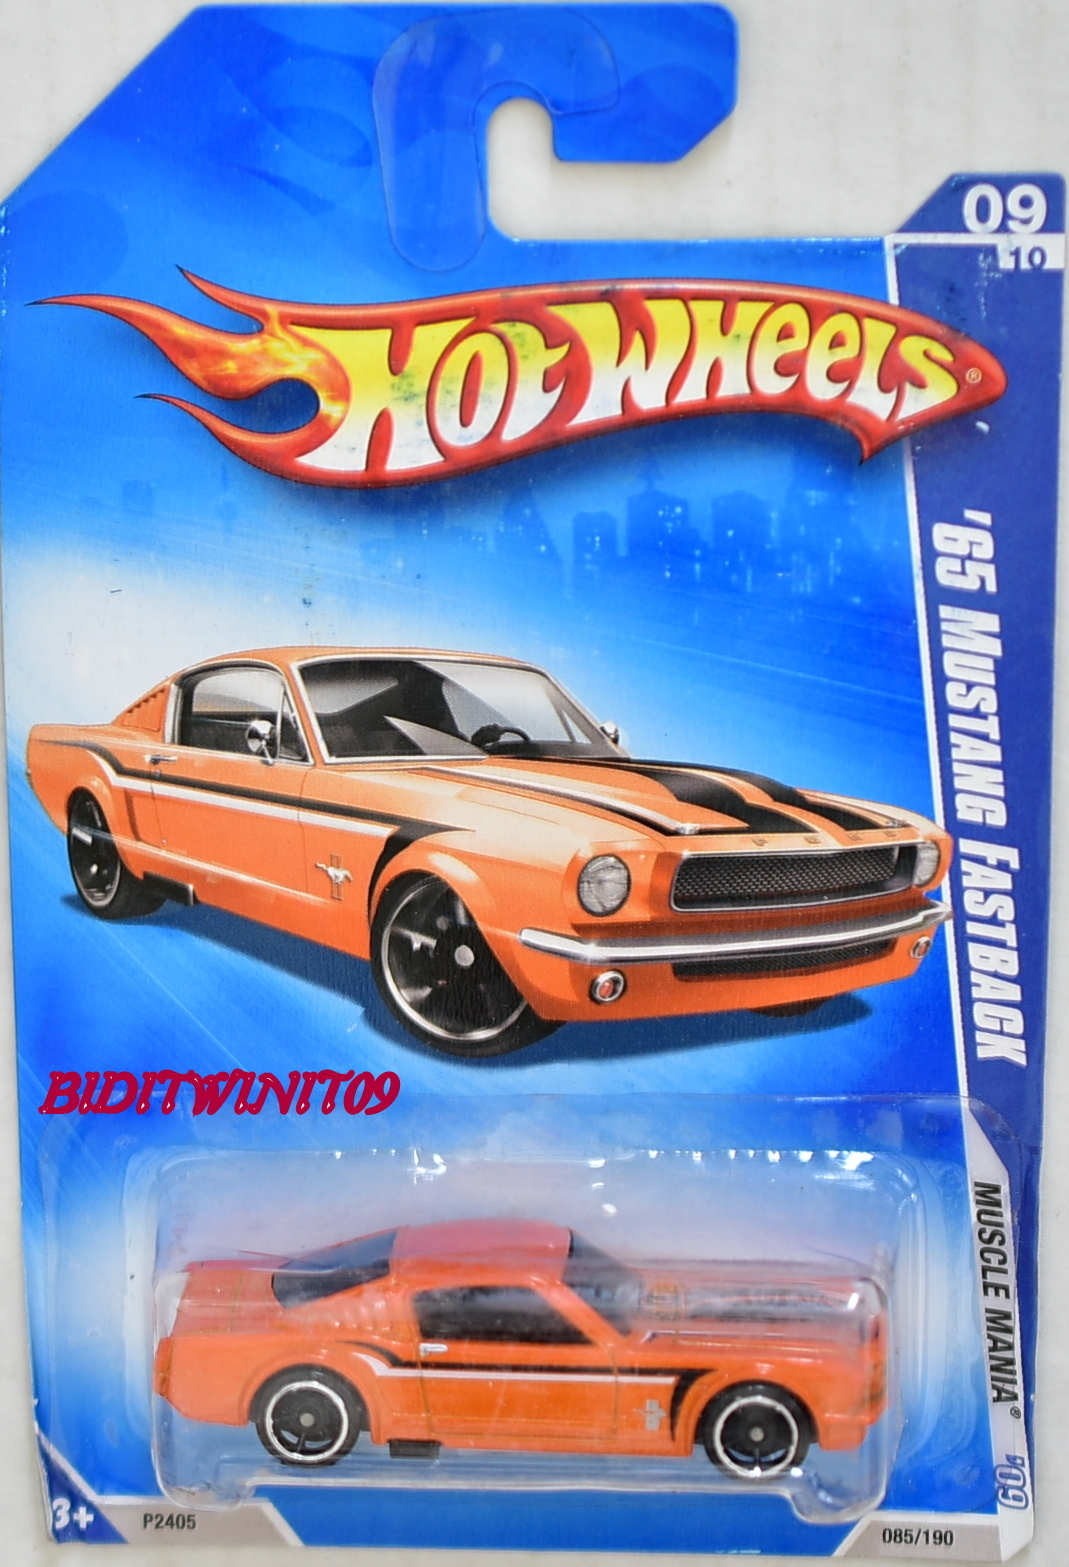 HOT WHEELS 2009 MUSCLE MANIA '65 MUSTANG FASTBACK ORANGE KMART BAD CARD